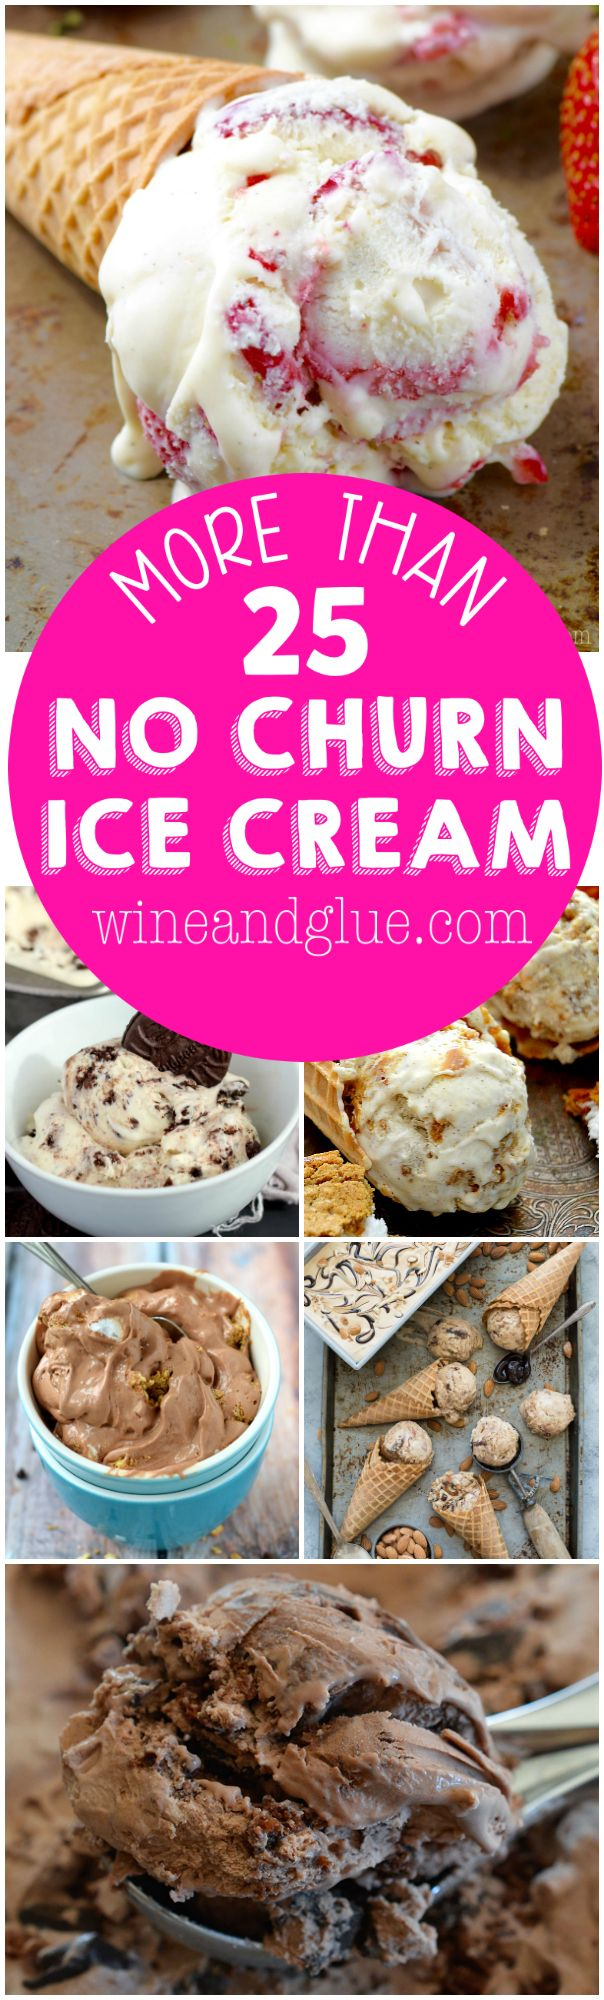 More than 25 No Churn Ice Cream Recipes that are so easy the kids can totally help with them and keep you all cool all summer long!